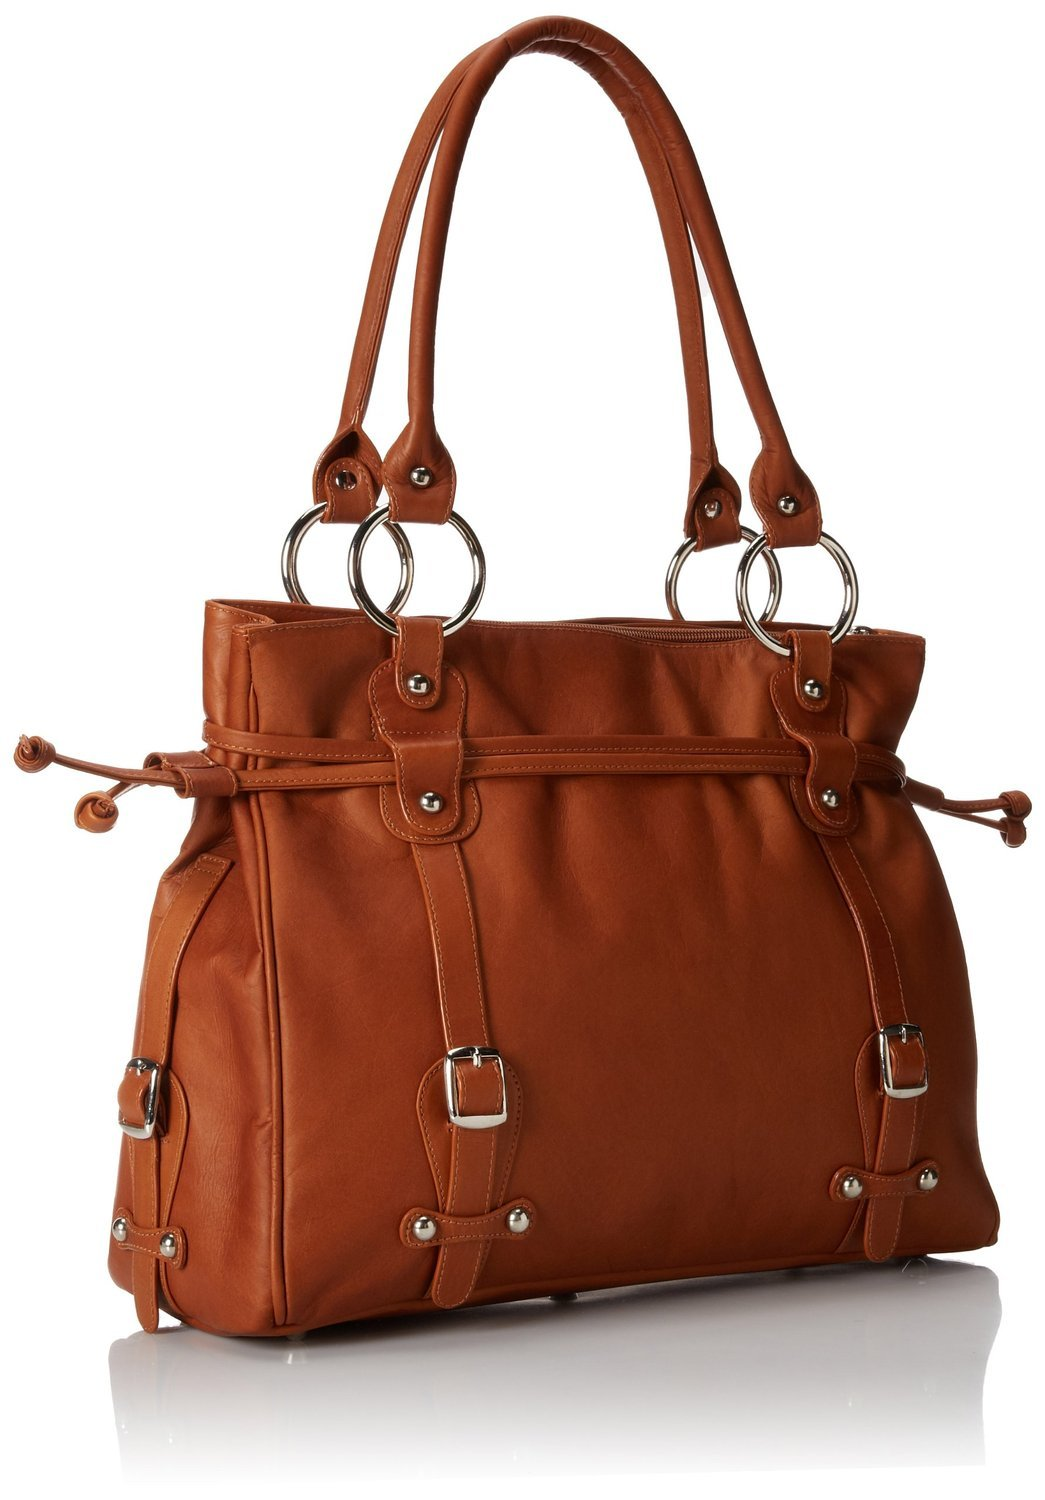 Computer Bag in Saddle Claire Chase Catalina Ladies Leather Handbag